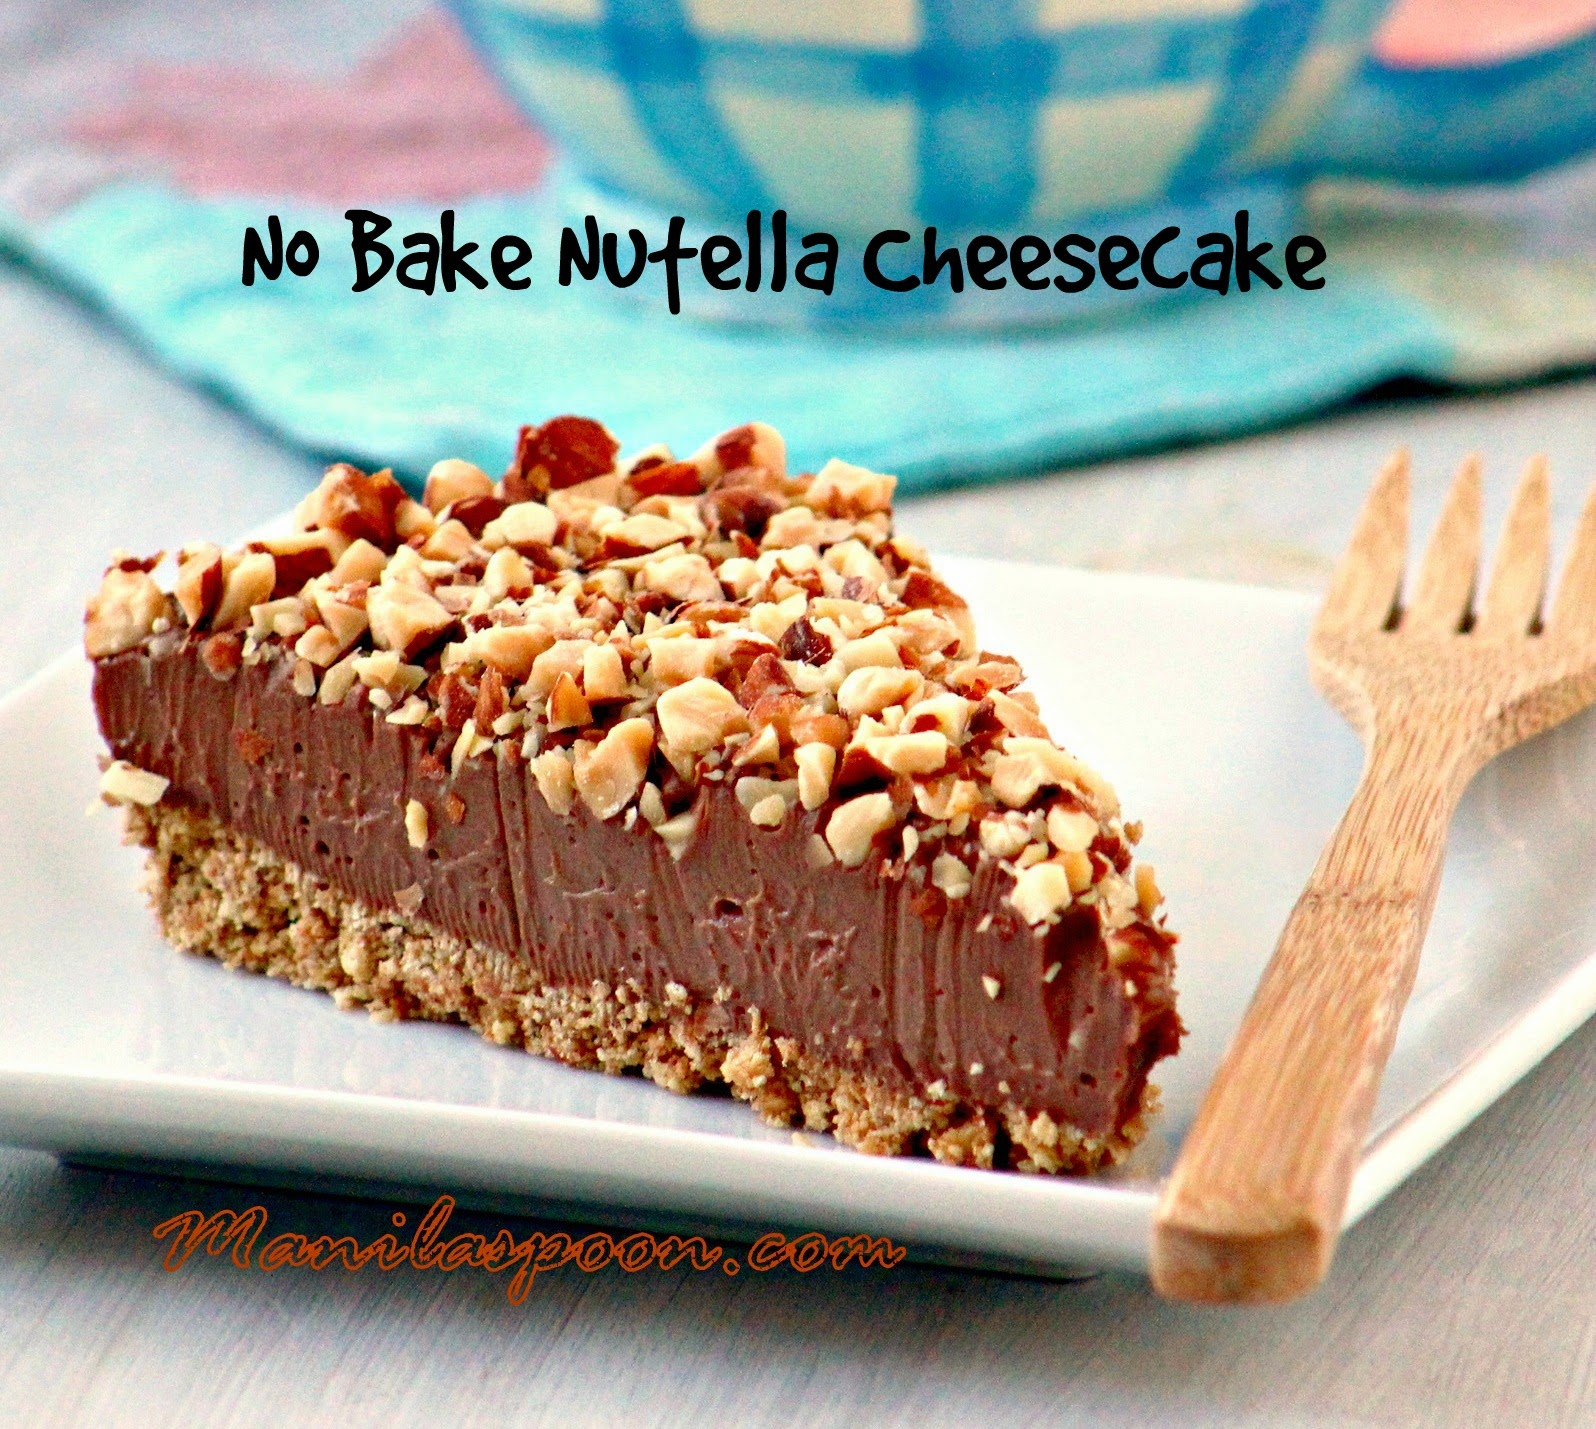 Totally luscious NO BAKE NUTELLA CHEESECAKE - this is what cheesecake dreams are made of! You're welcome! #no #bake #nutella #cheesecake